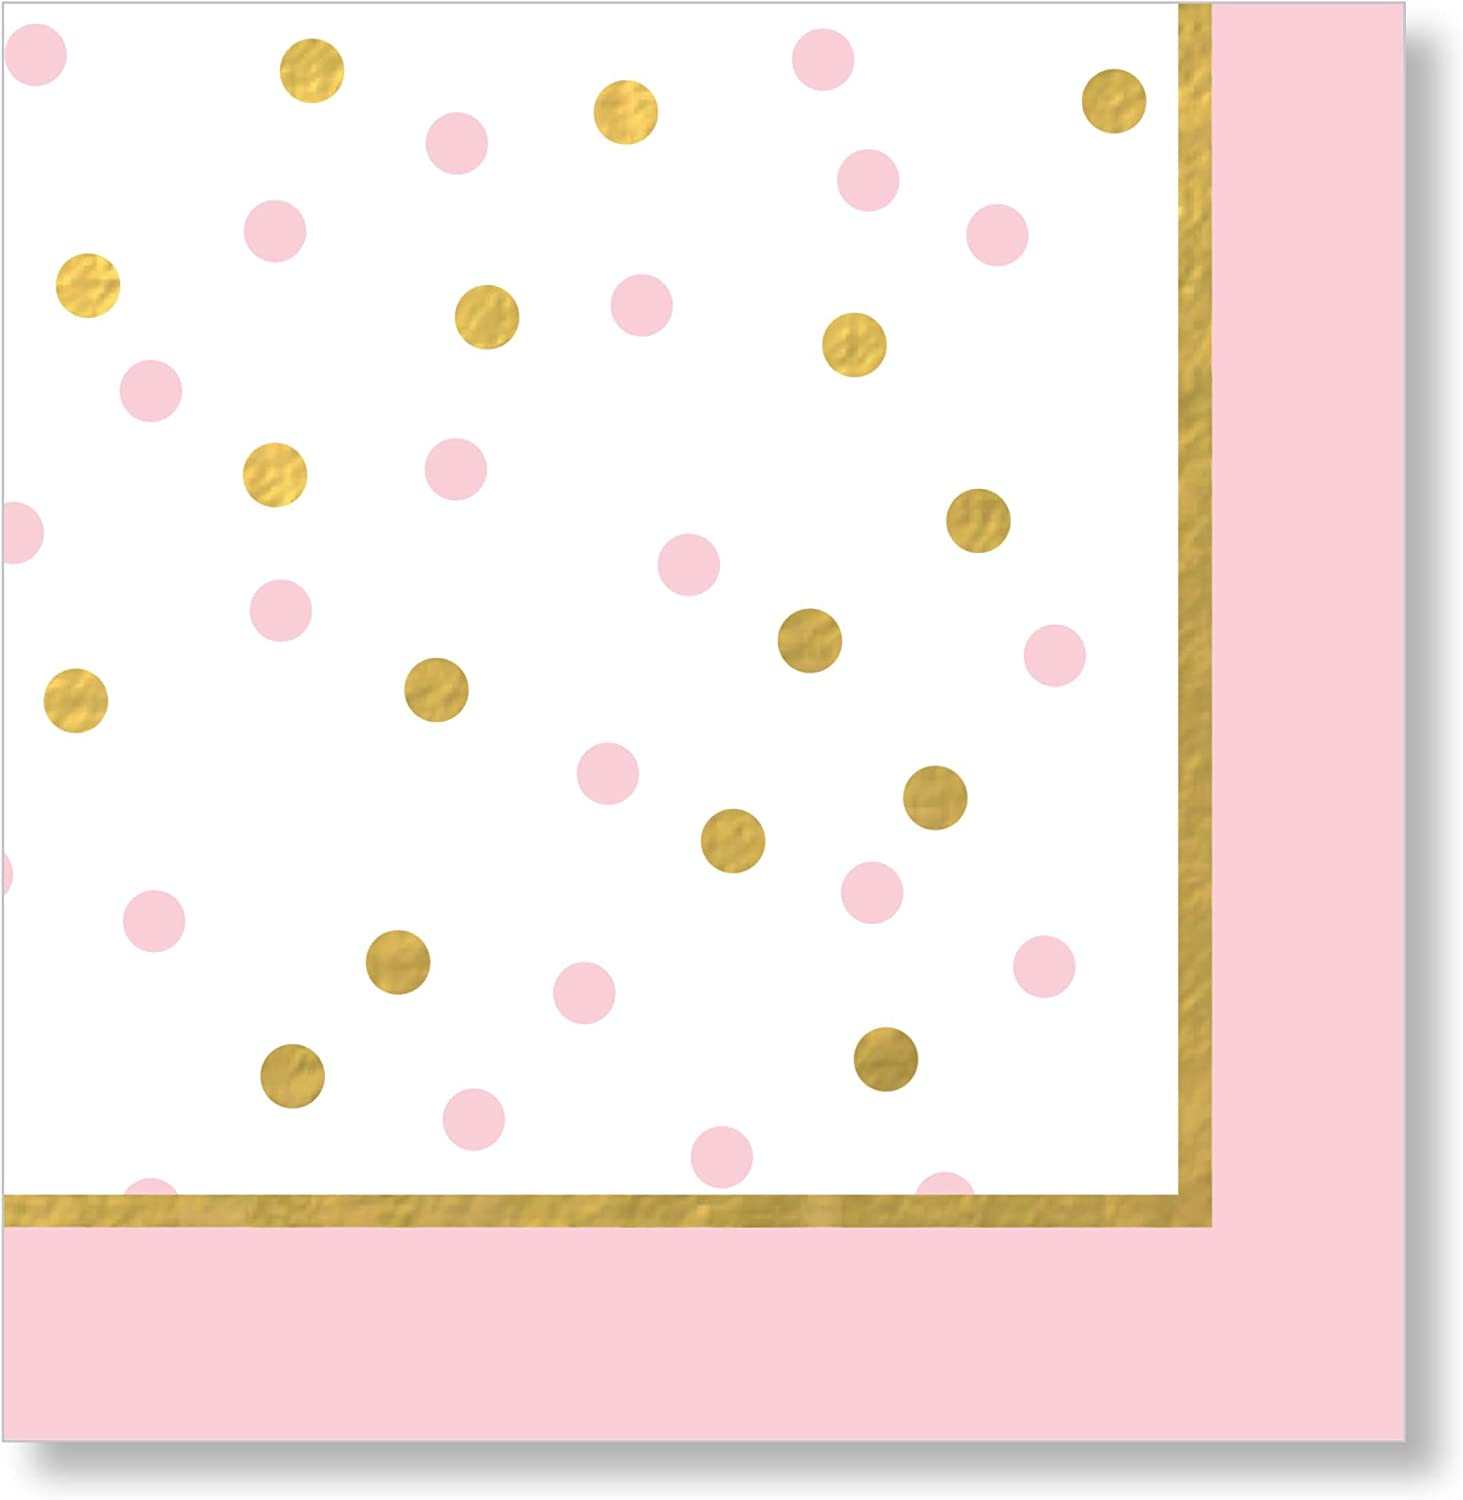 Carter's TW4-19068 Polka Dot Baby Shower Beverage Napkins (20 Piece), Pink and Gold W x 4.825